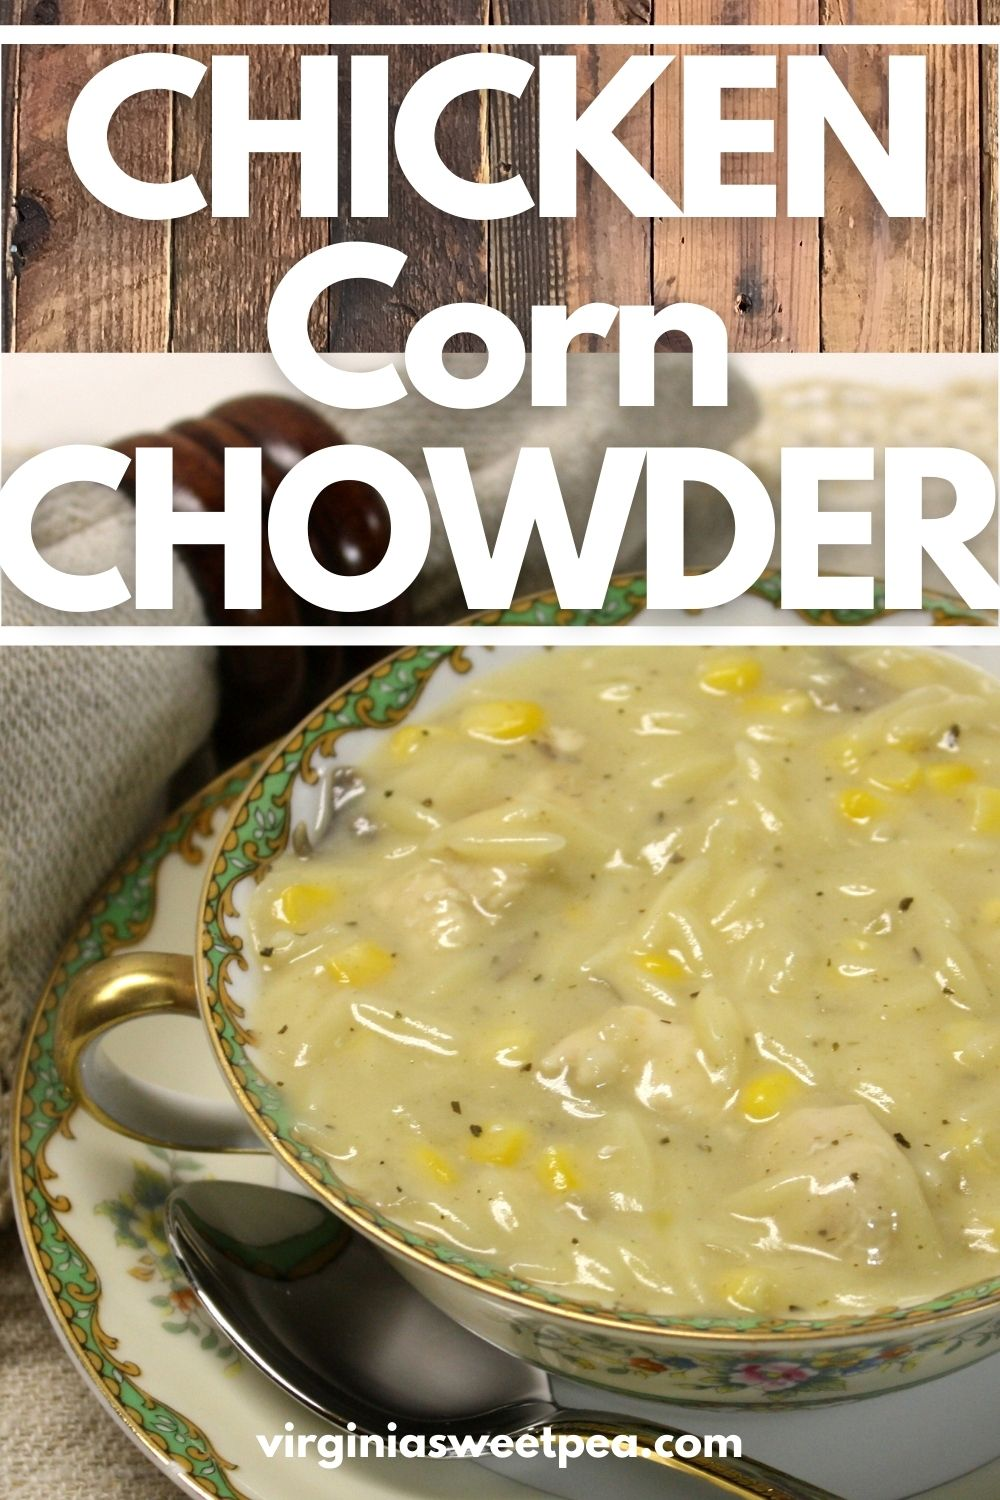 Chicken Corn Chowder - This tasty soup is ready to enjoy in just 30 minutes.  Mushrooms, chicken, corn, and orzo make a delicious combination for this satisfying and delicious chowder. via @spaula